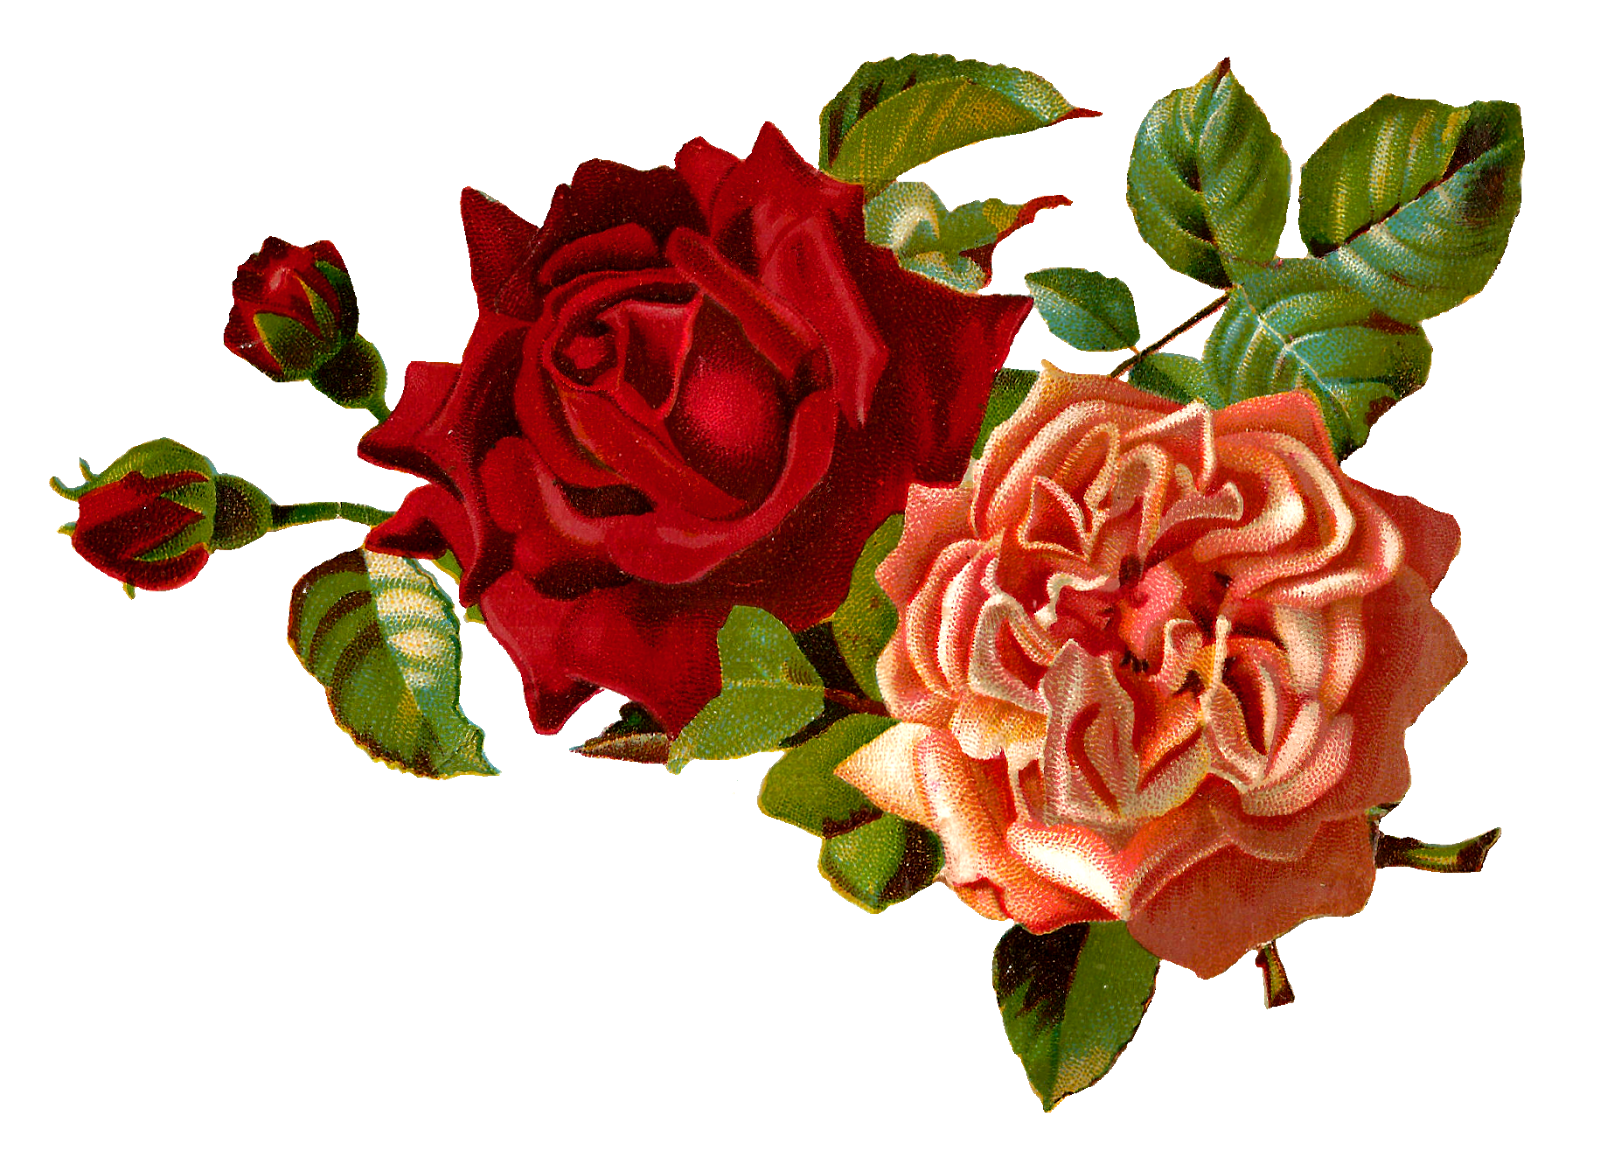 Single Red Rose Flower Stock Images: Stock Rose Clipart 20 Free Cliparts